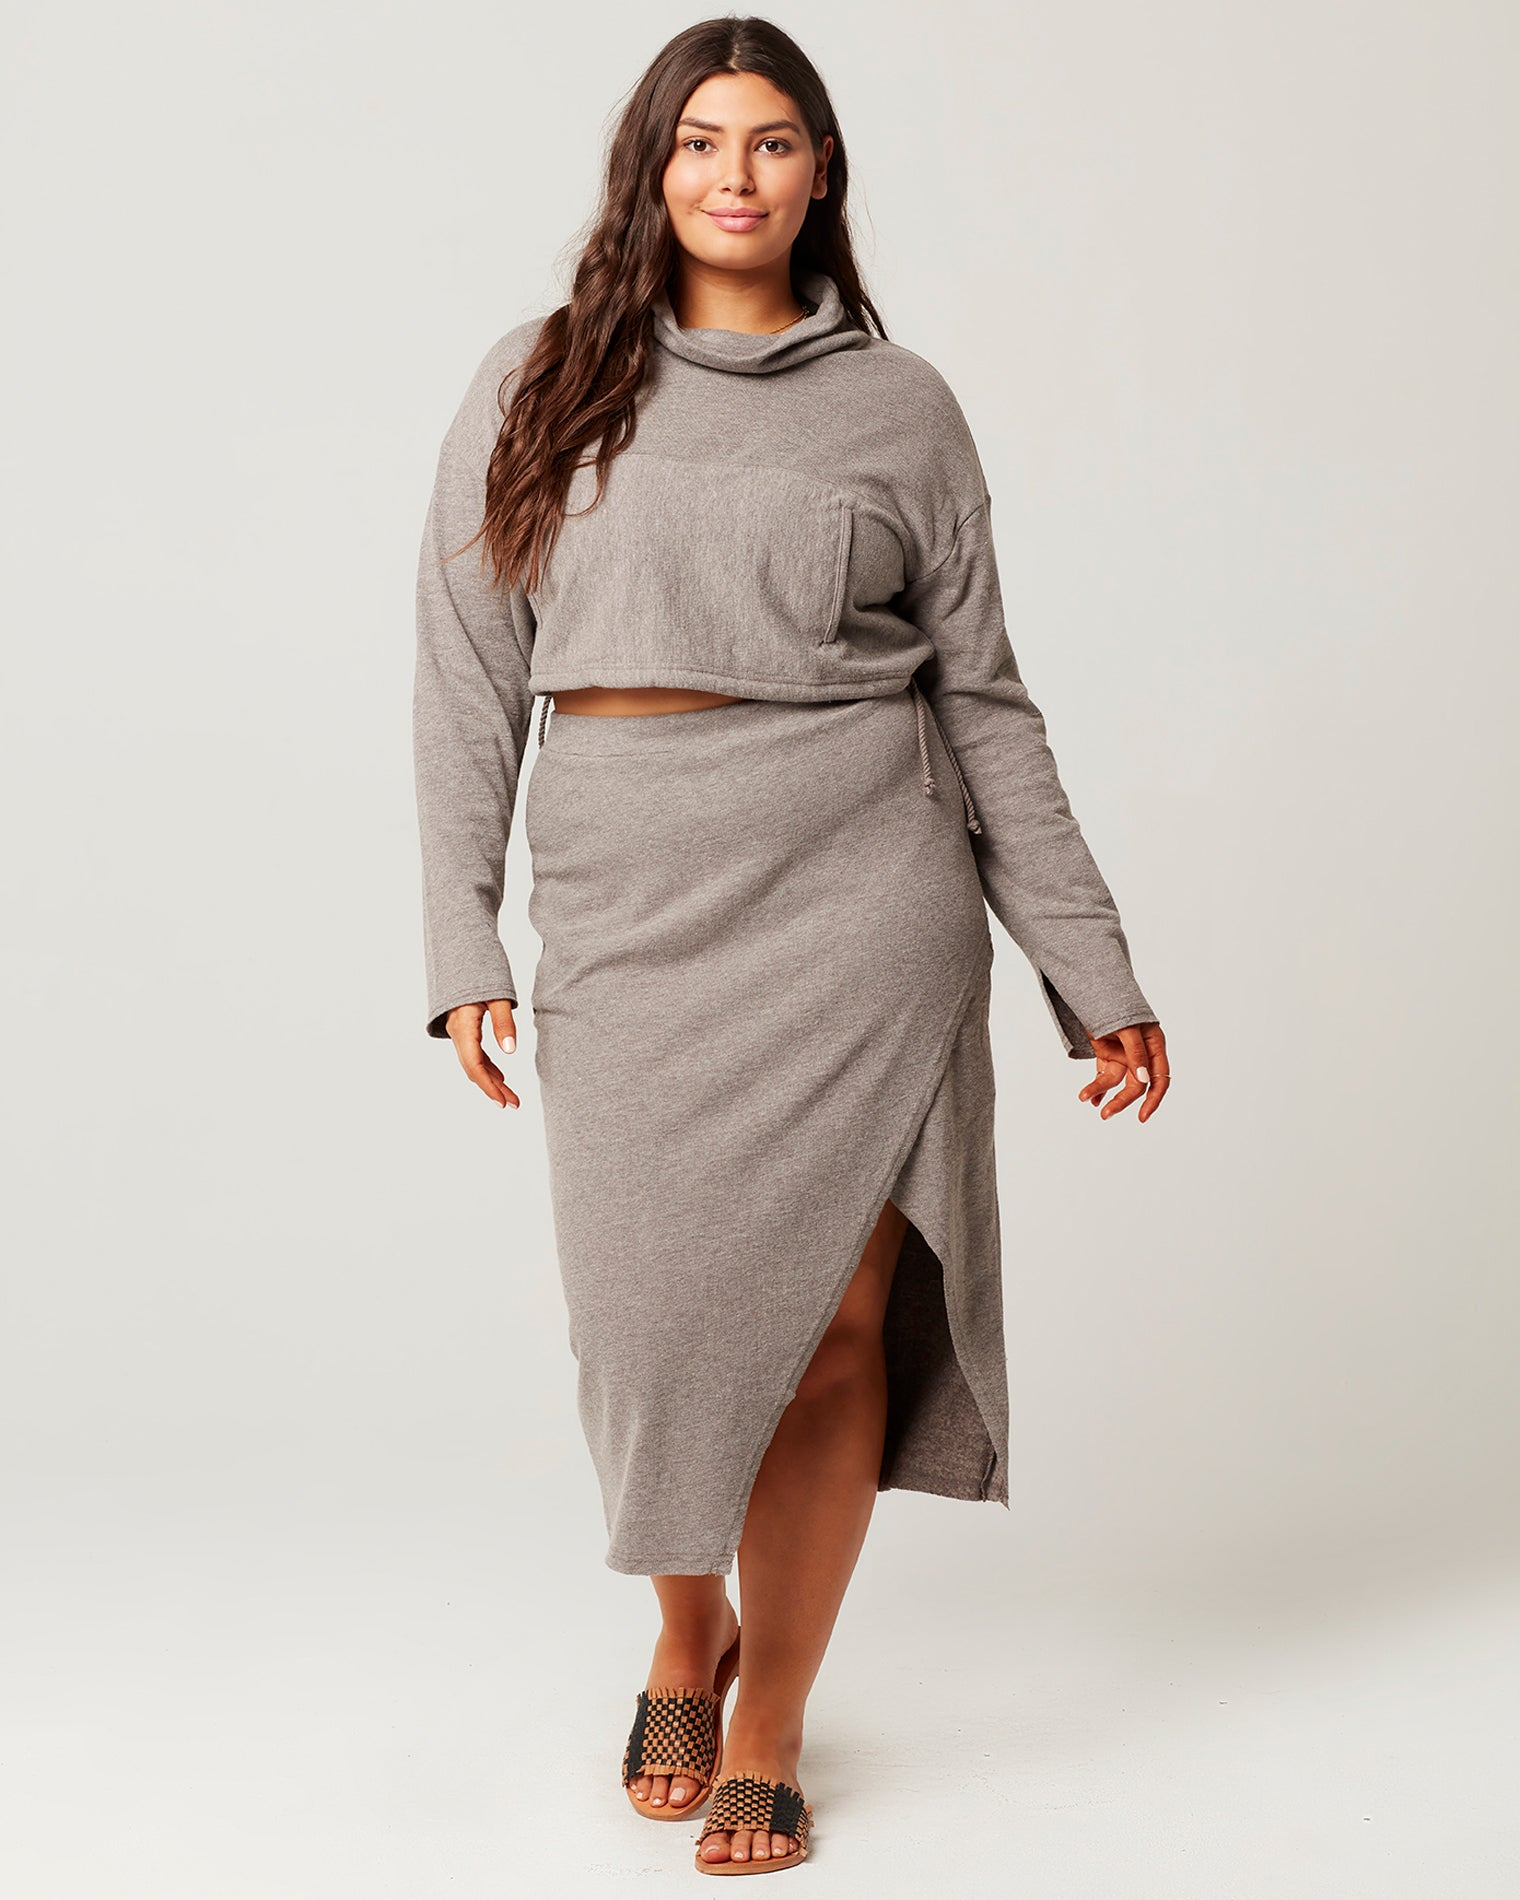 Heather Grey | Model: Elisa (size: XL)